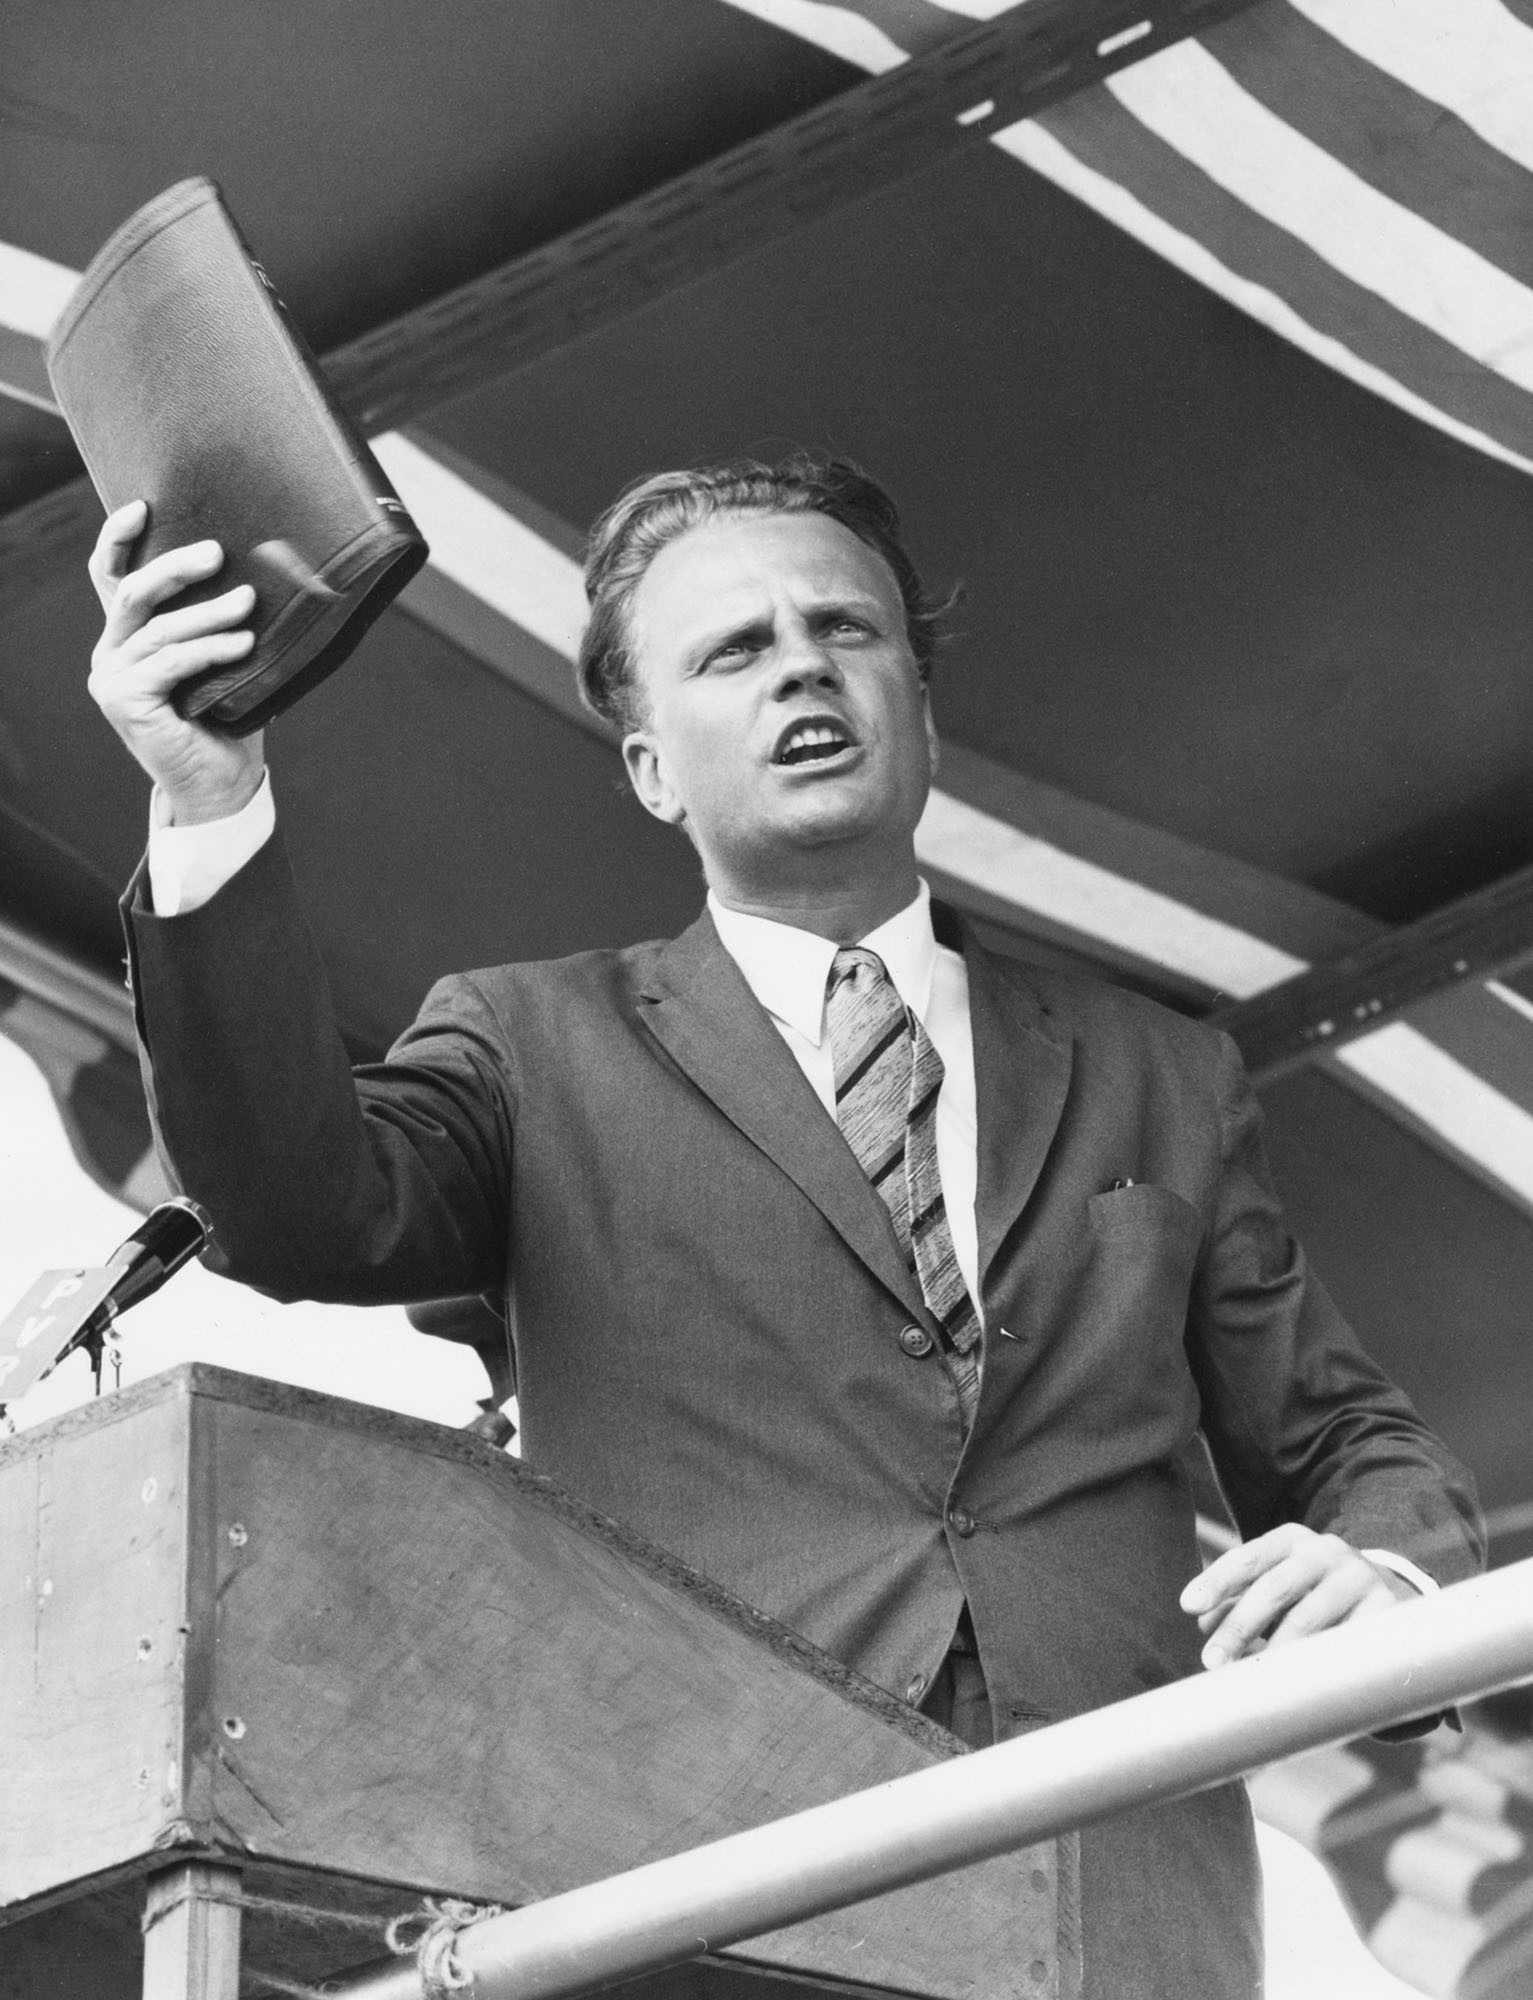 For six decades, Billy Graham proclaimed the Gospel in a simple and courageous way at stadium events in more than 180 countries outside the United States. One of these was in Bulwayo, Zimbabwe in 1960. Photo by IMB